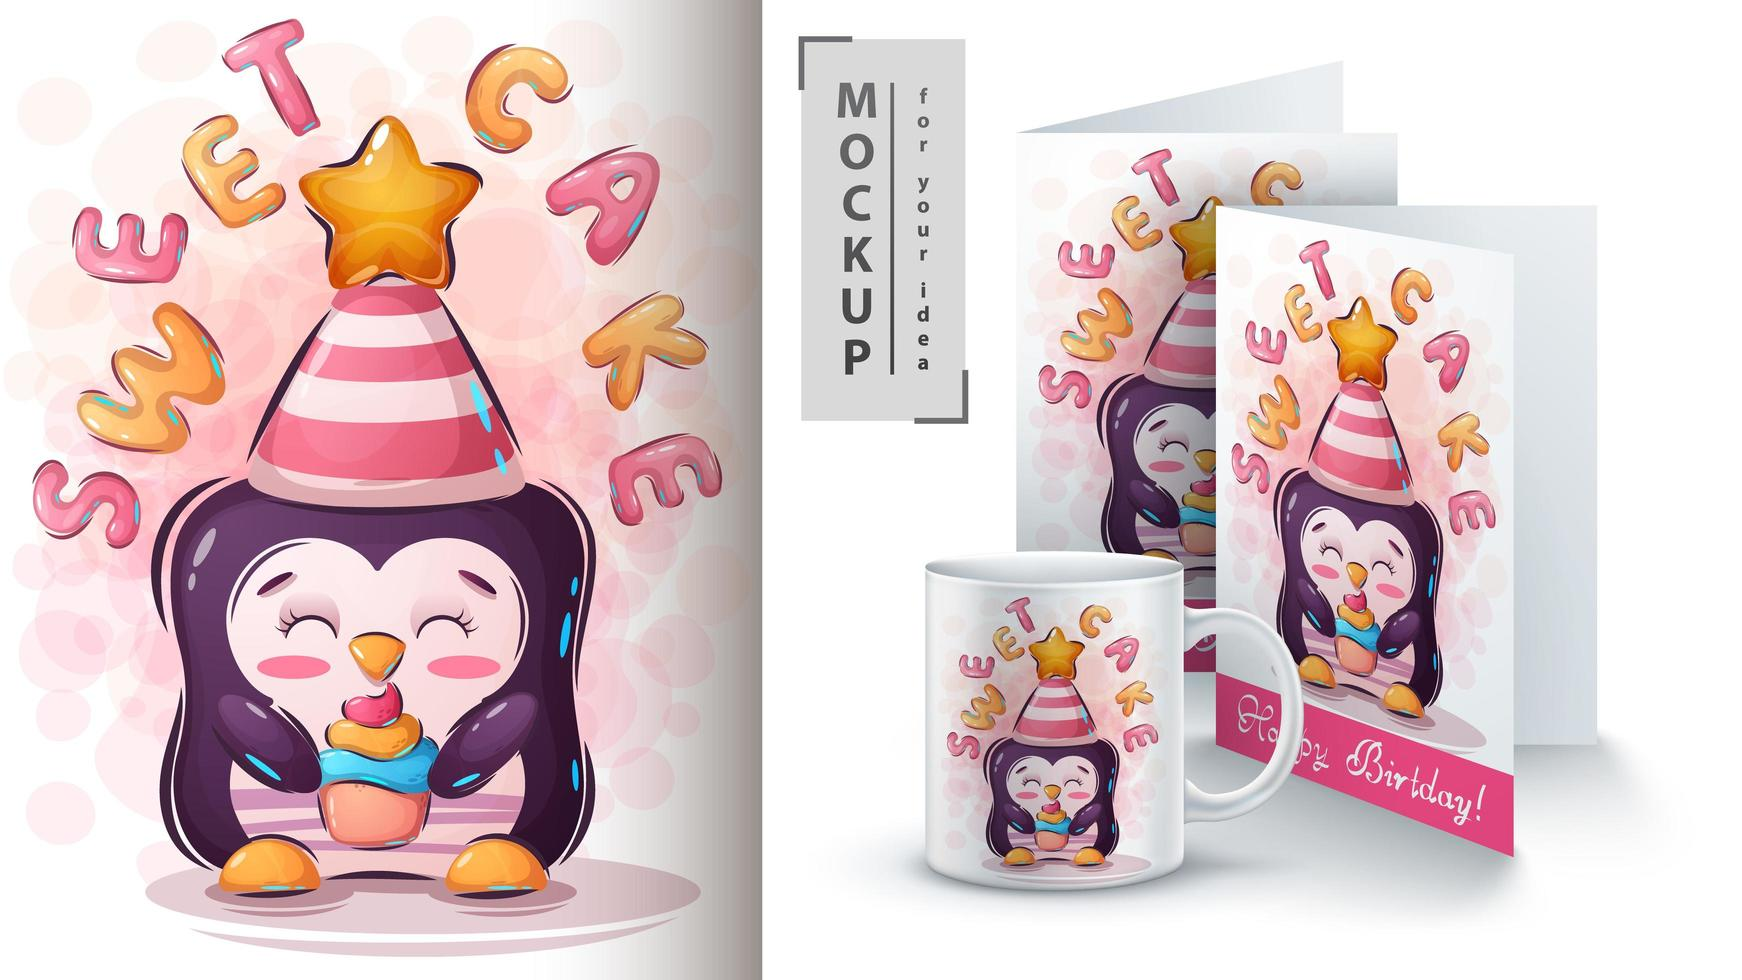 Penguin with Cake Poster and Merchandising vector